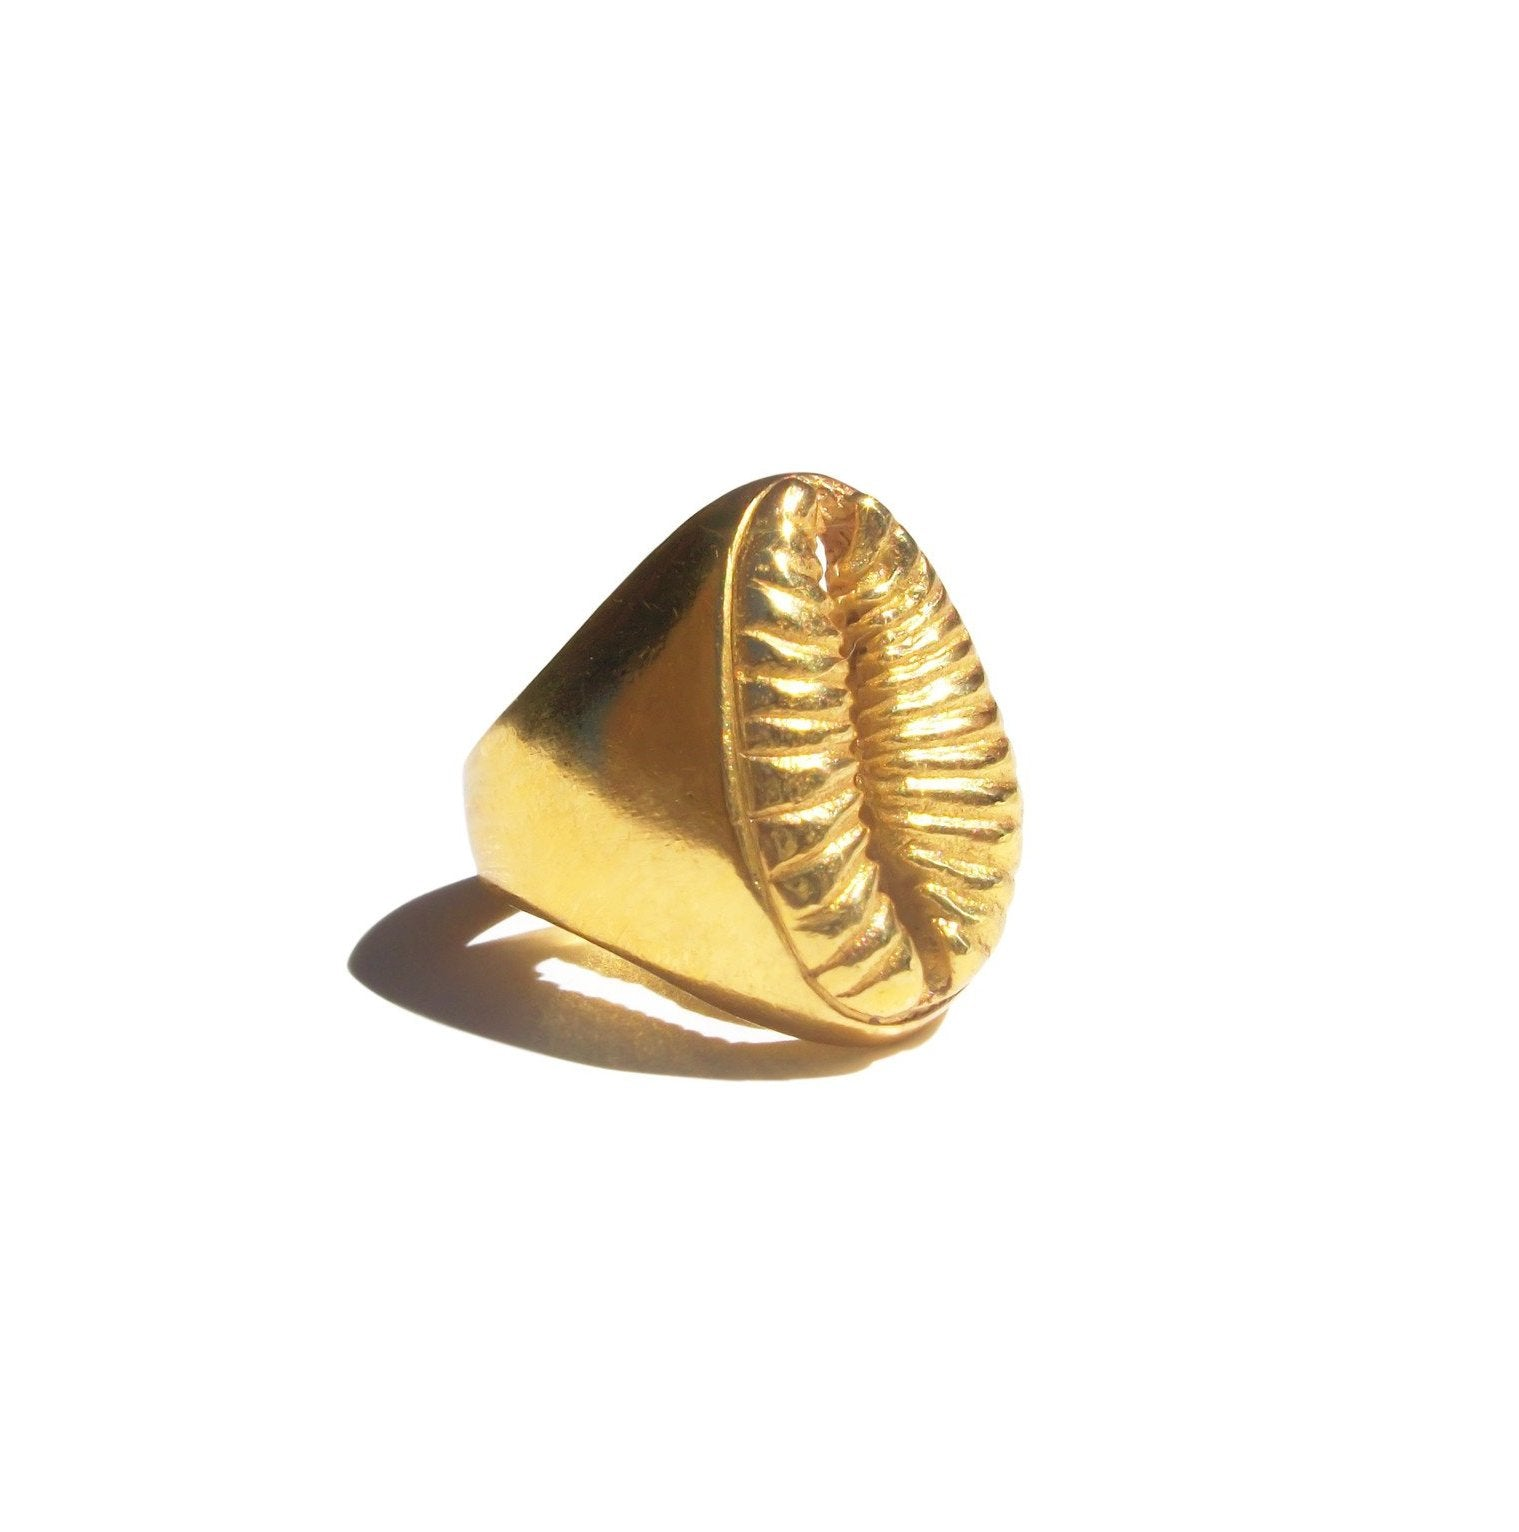 Cowrie Signet Ring by Rokus - Art Jewellery Store: Song of Jewellery